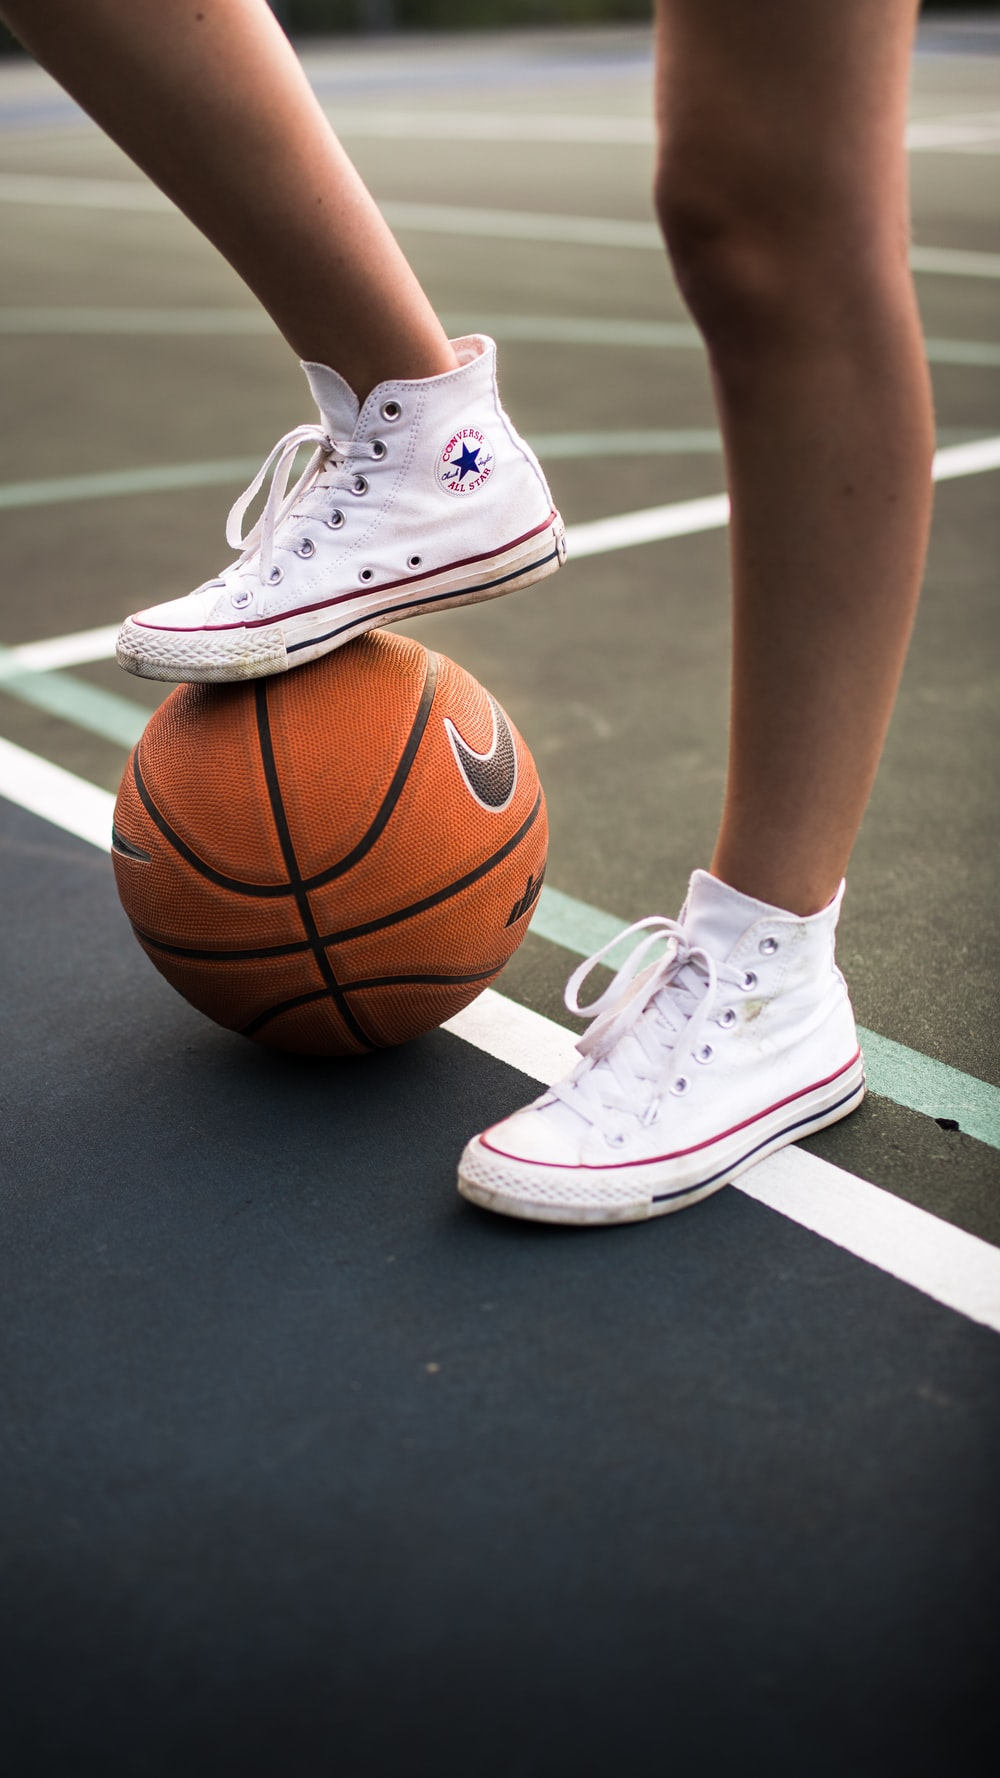 person in white nike basketball shoes standing on basketball court